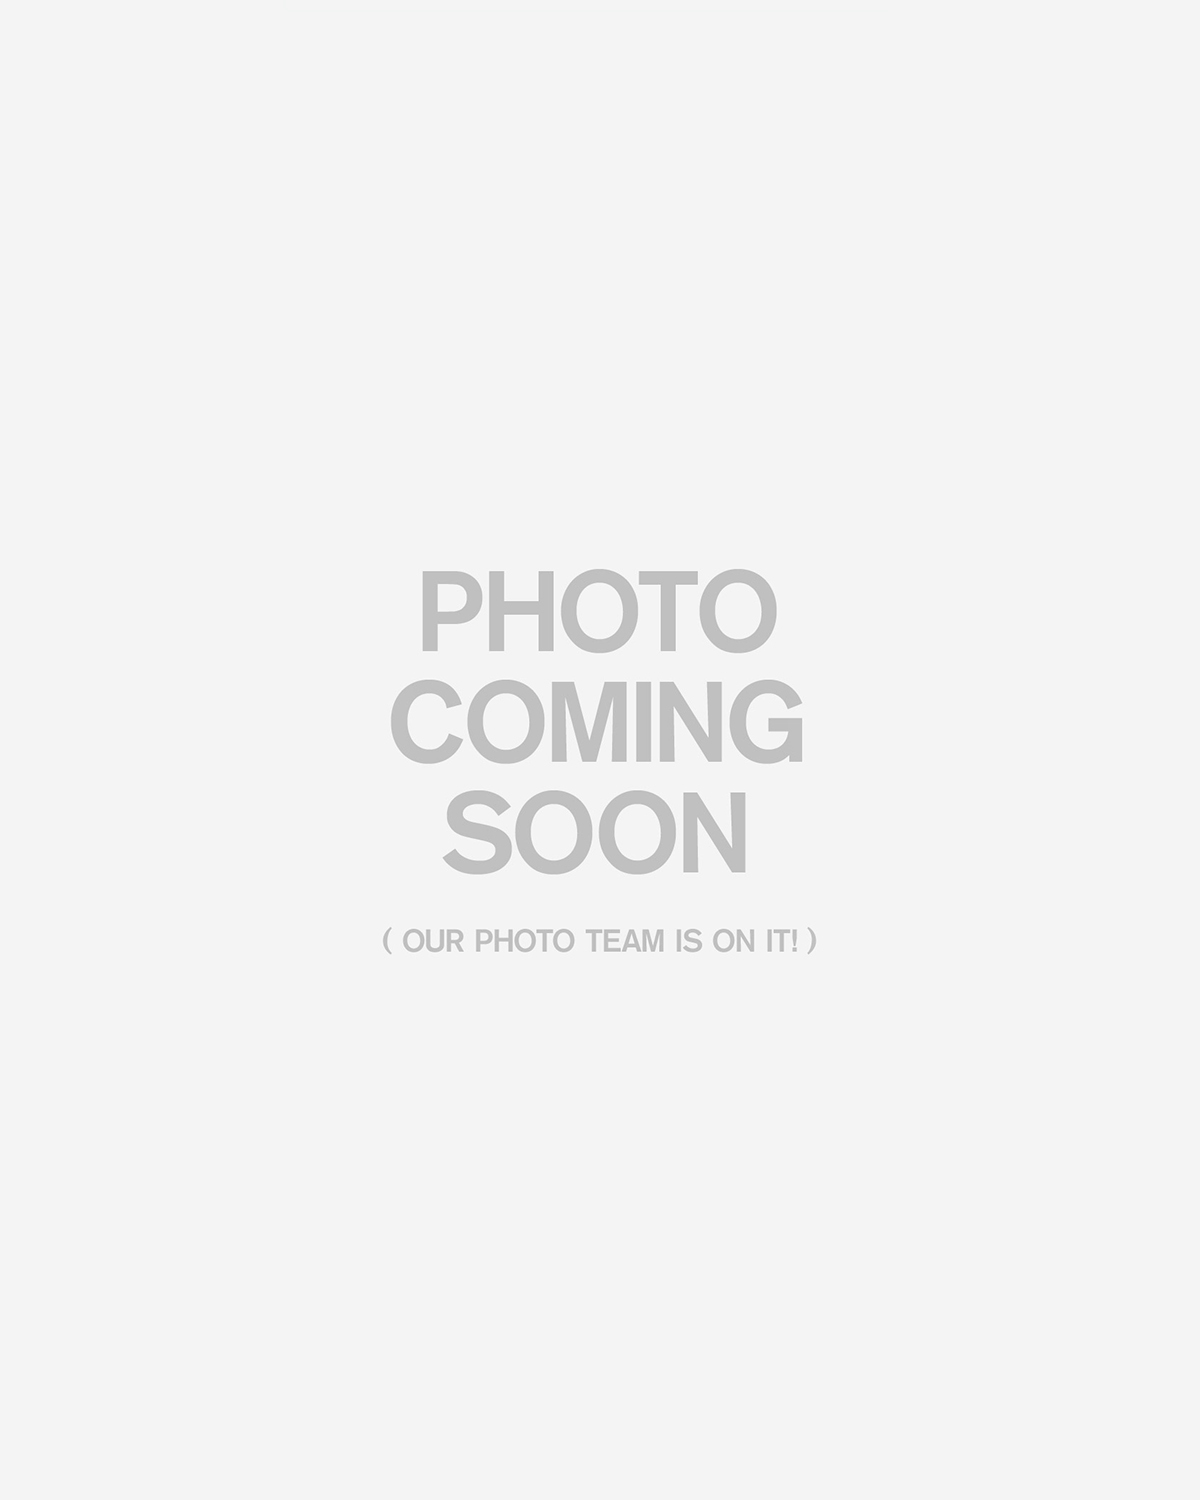 light gray oxford cloth photographer suit jacket